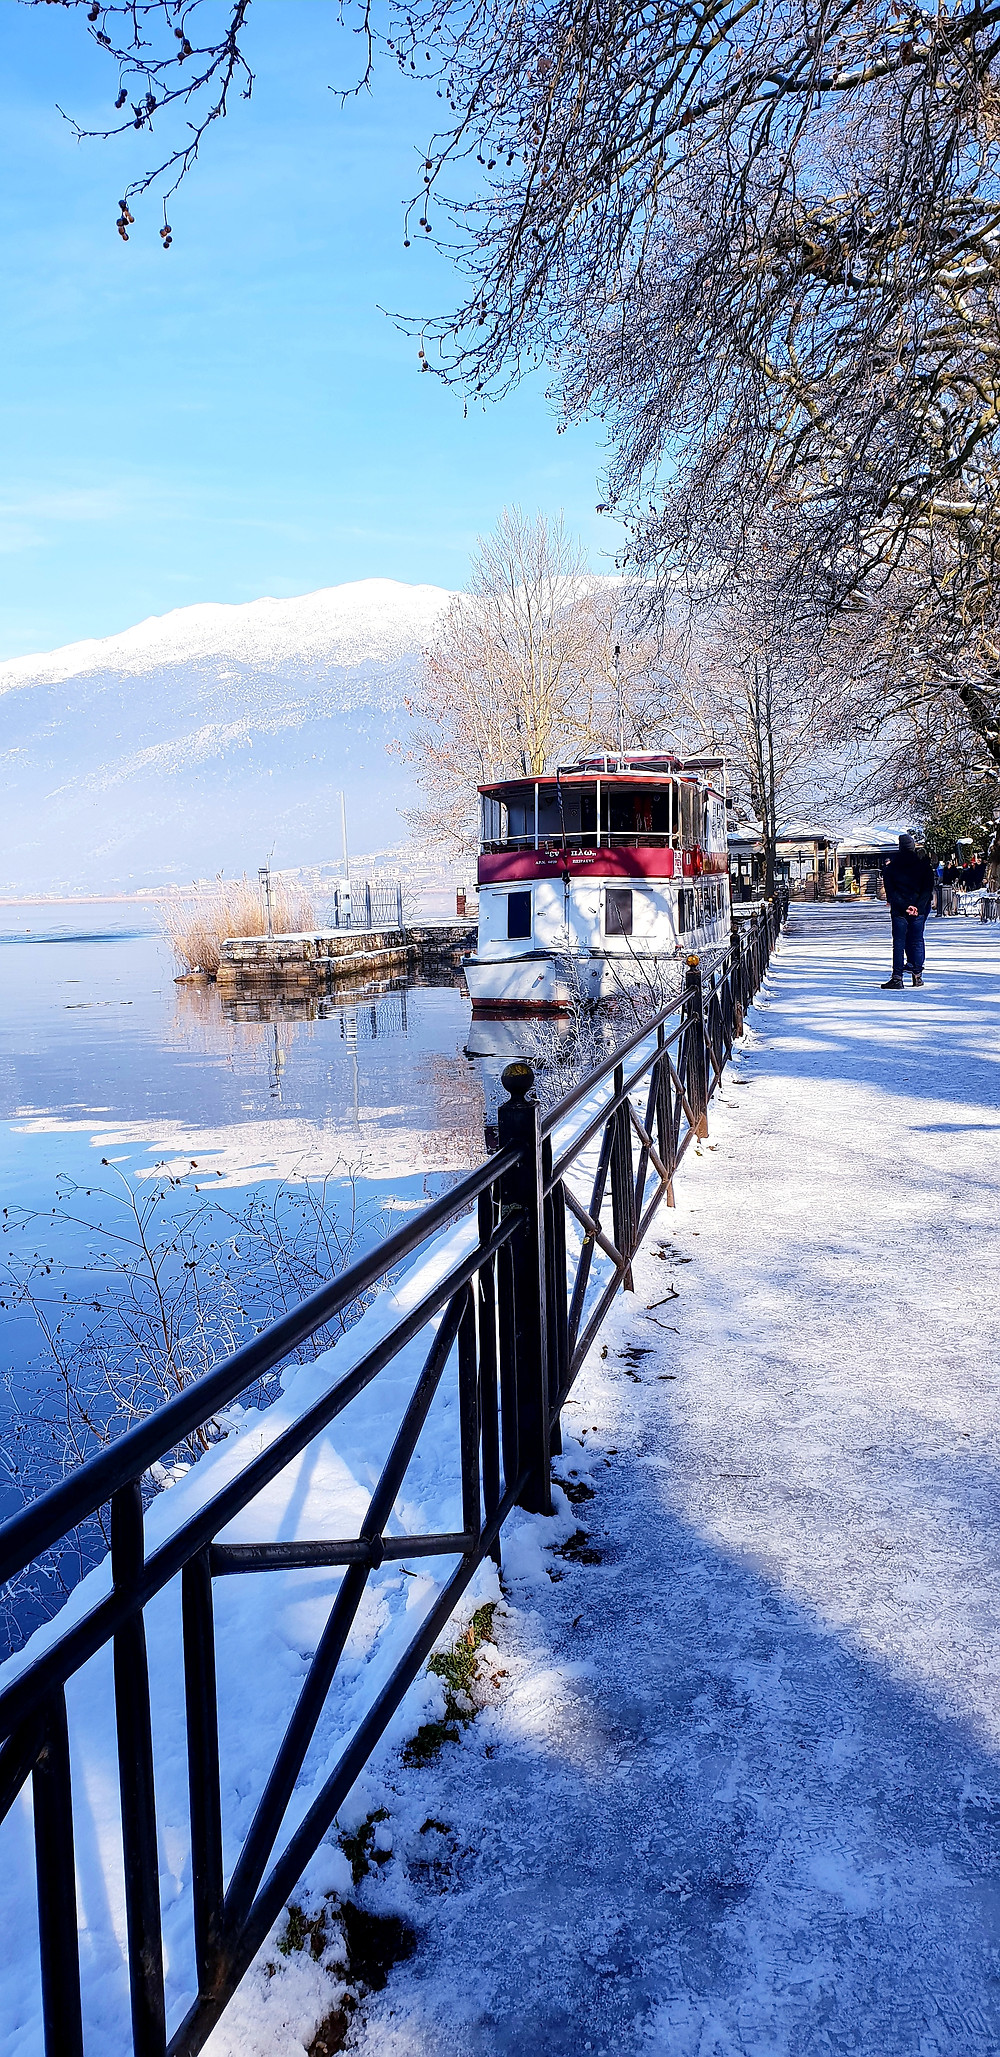 Snow by the lake - Photo by Mary Samou